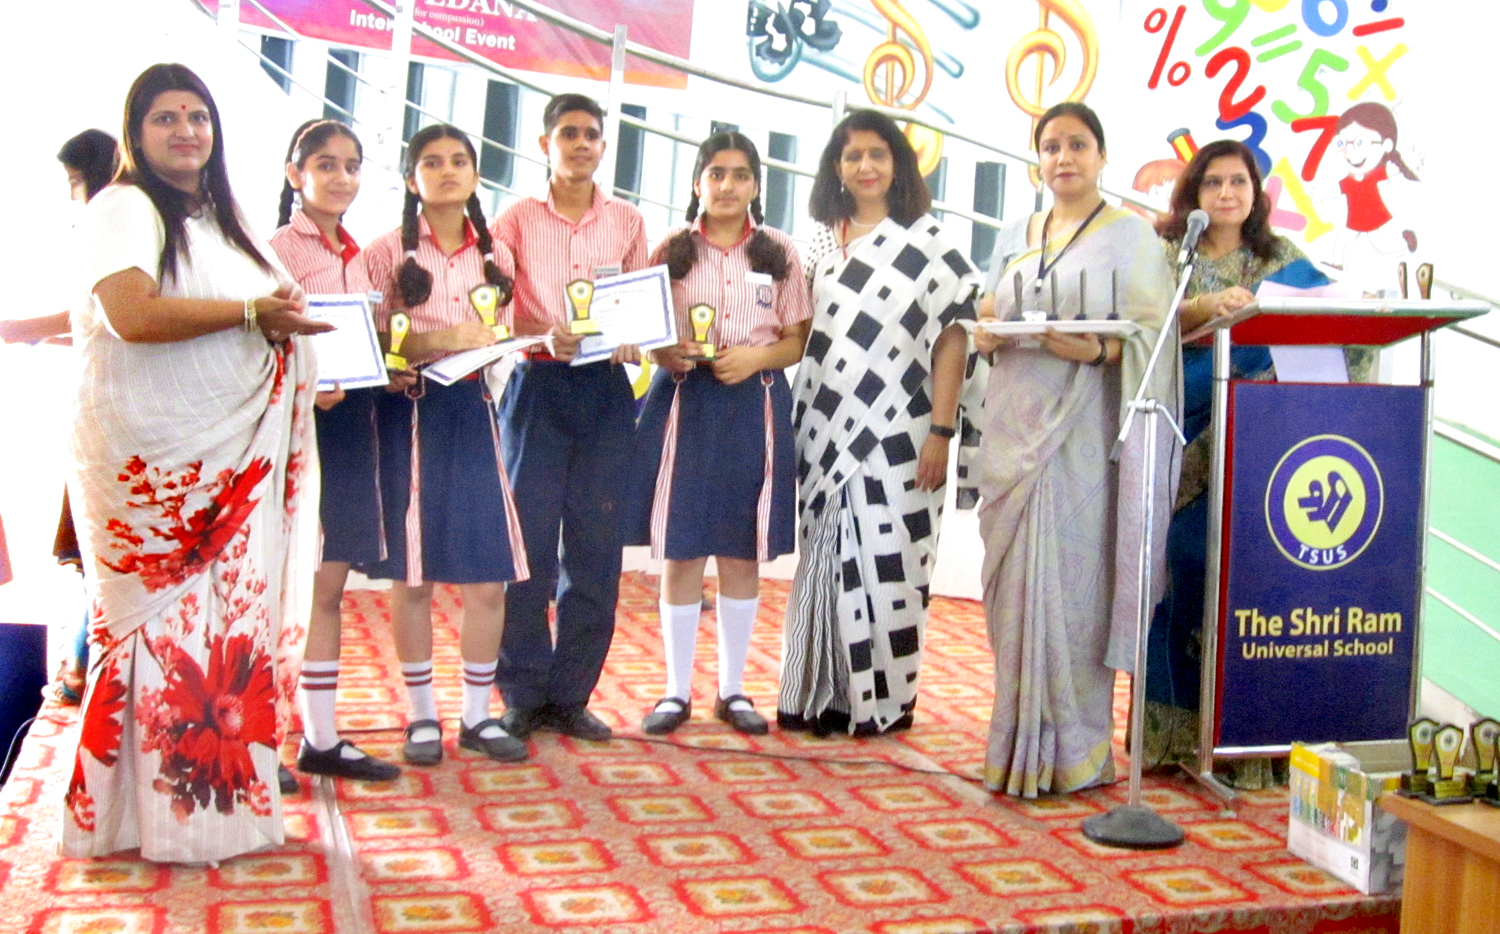 Winners of Shri Samvedana displaying certificates while posing along with dignitaries in Jammu on Thursday.